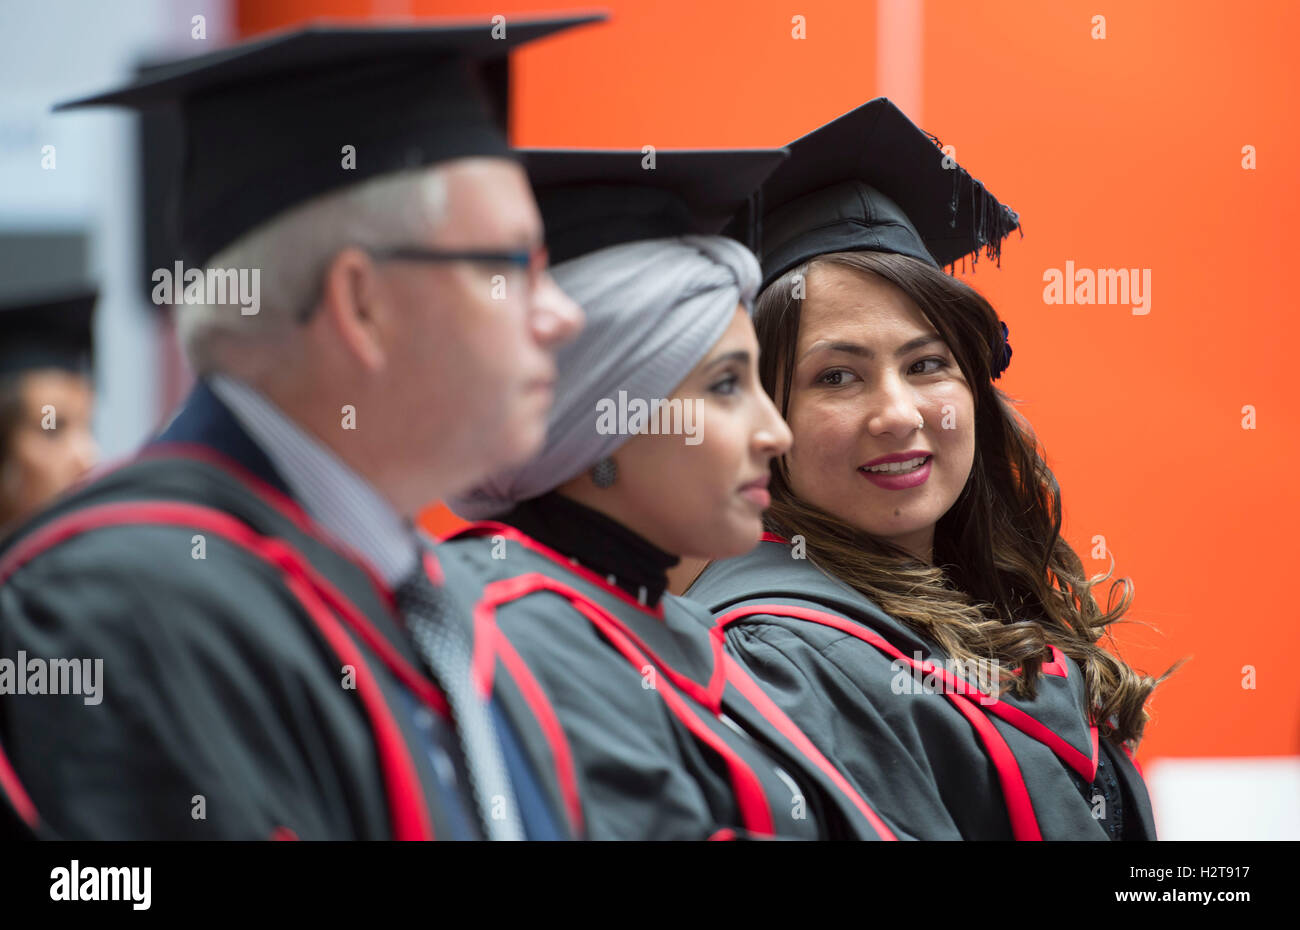 University degree students wearing mortarboards and gowns during a graduation ceremony. - Stock Image